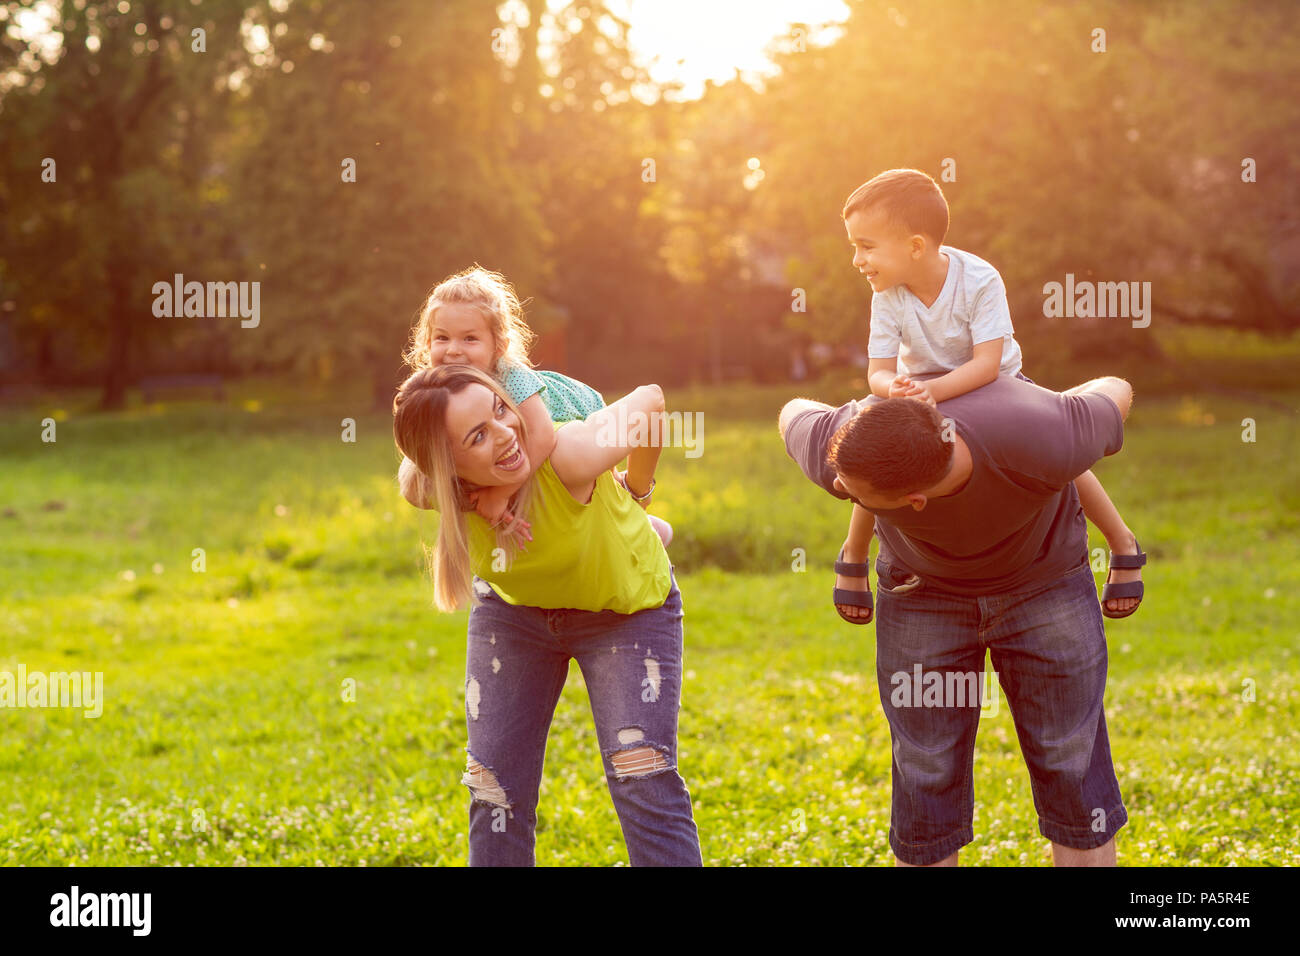 family, happiness, childhood and people concept - Happy parents giving piggyback ride to children - Stock Image